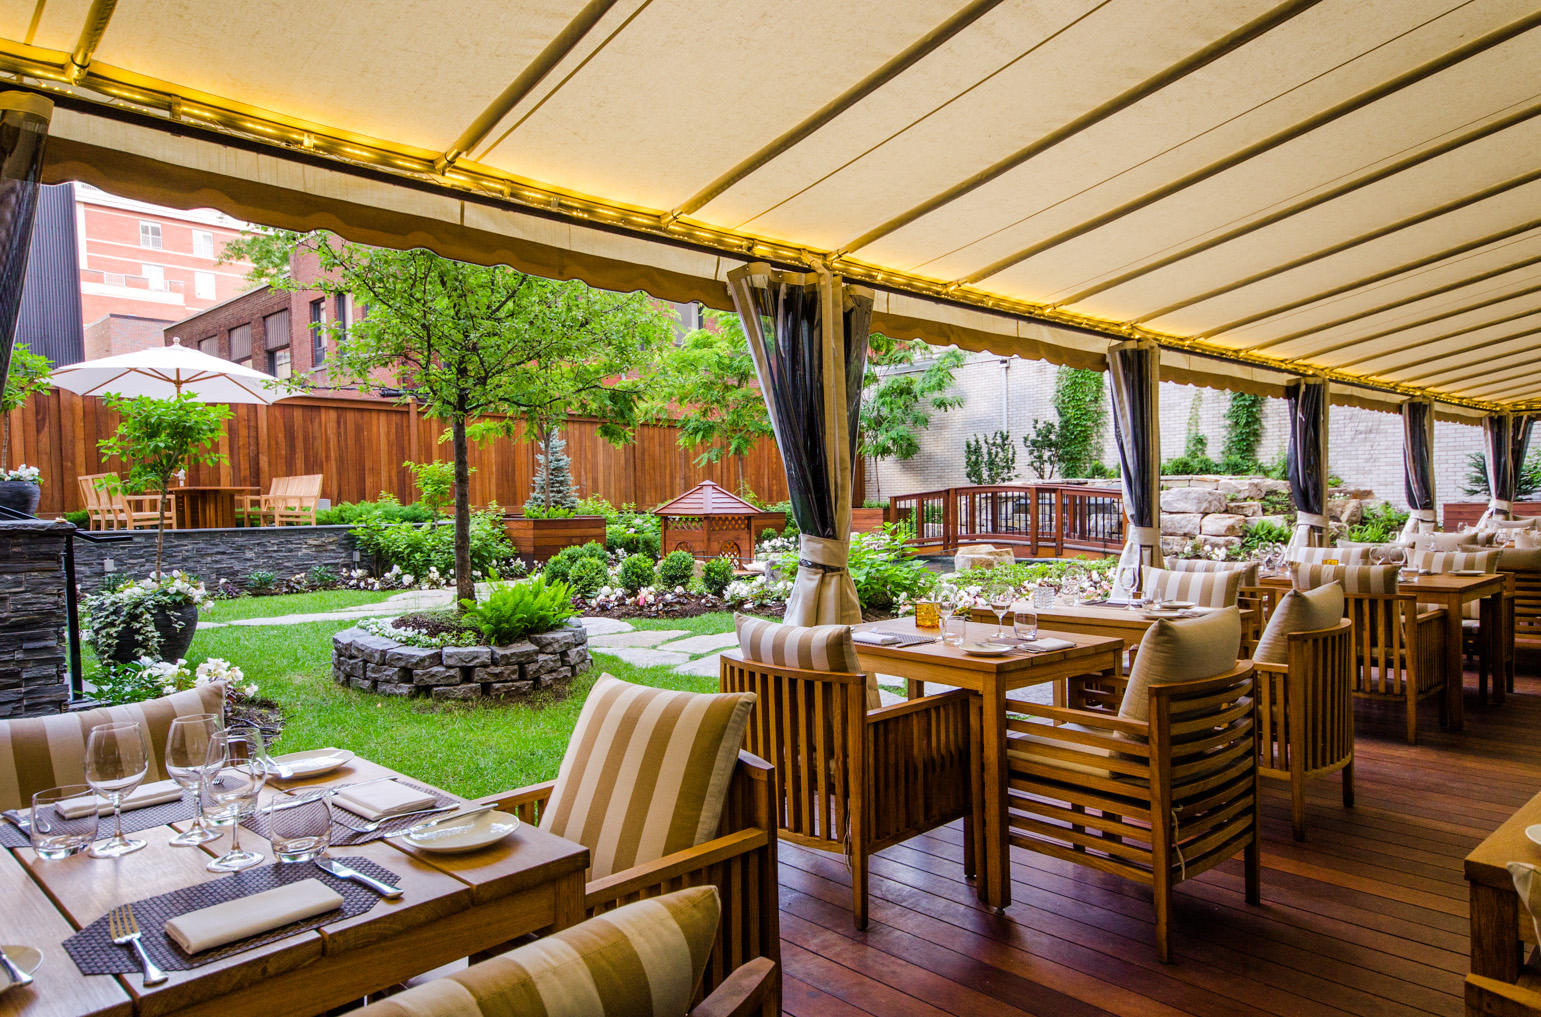 The Ritz-Carlton, Montreal à Montreal: Traditional French culinary roots meet elevated standards of hospitality at Maison Boulud, an innovative French restaurant located in the Ritz-Carlton Montreal. With a noted affinity for local and artisanal products, Chef Daniel Boulud enchants diners with his imaginative French dishes, elegantly served in the casually elegant restaurant, private dining room or romantic outdoor dining area overlooking the garden.